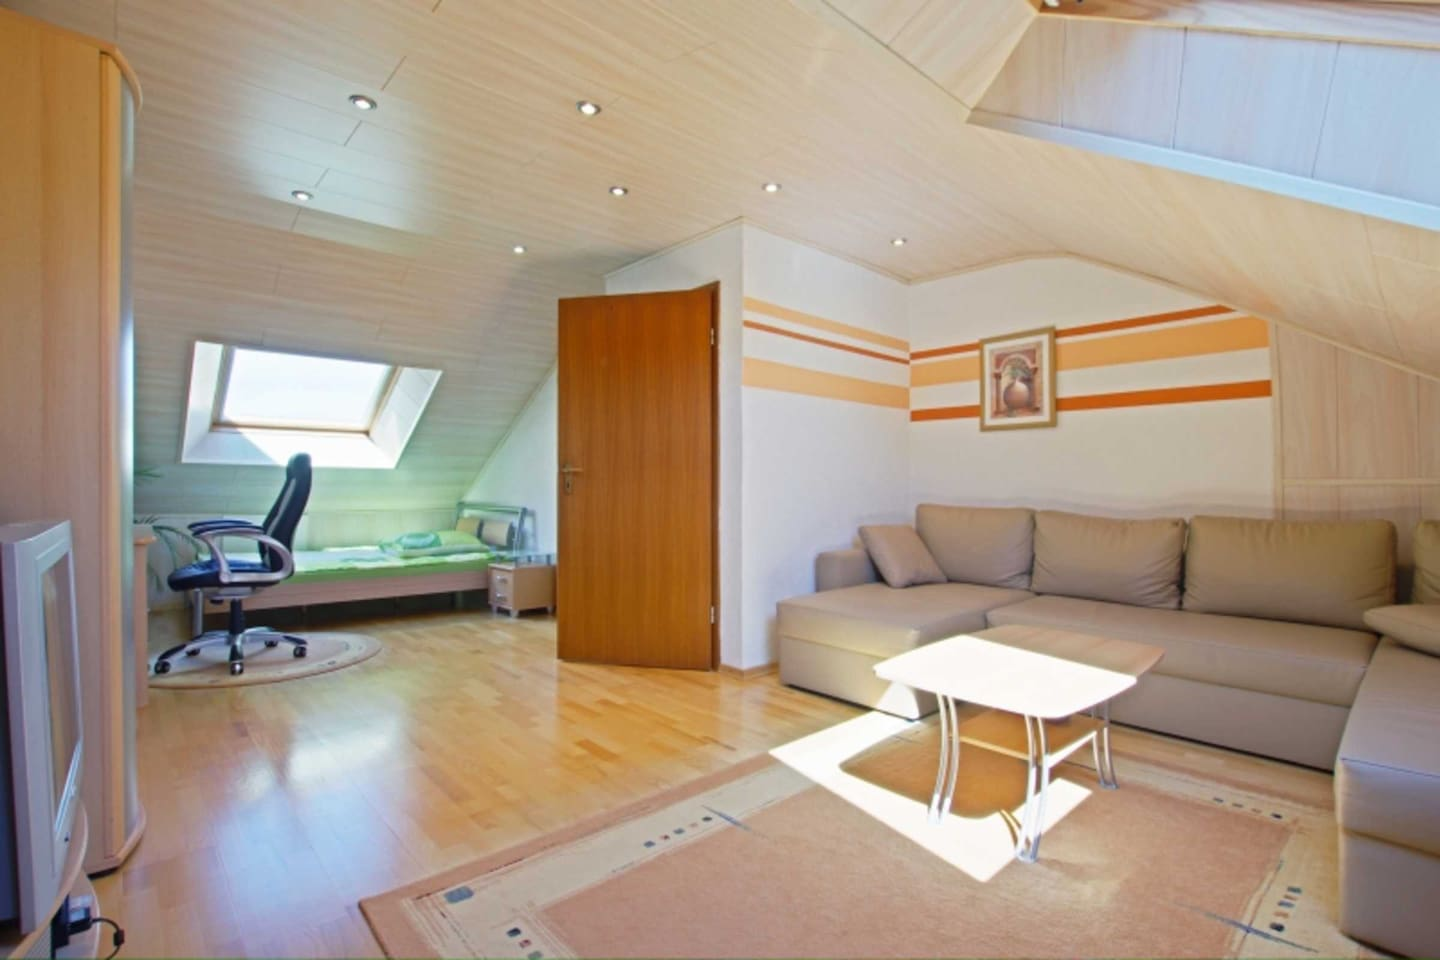 Privatzimmer | ID 4407 | WiFi, Zimmer im Haus - Apartments for Rent ...